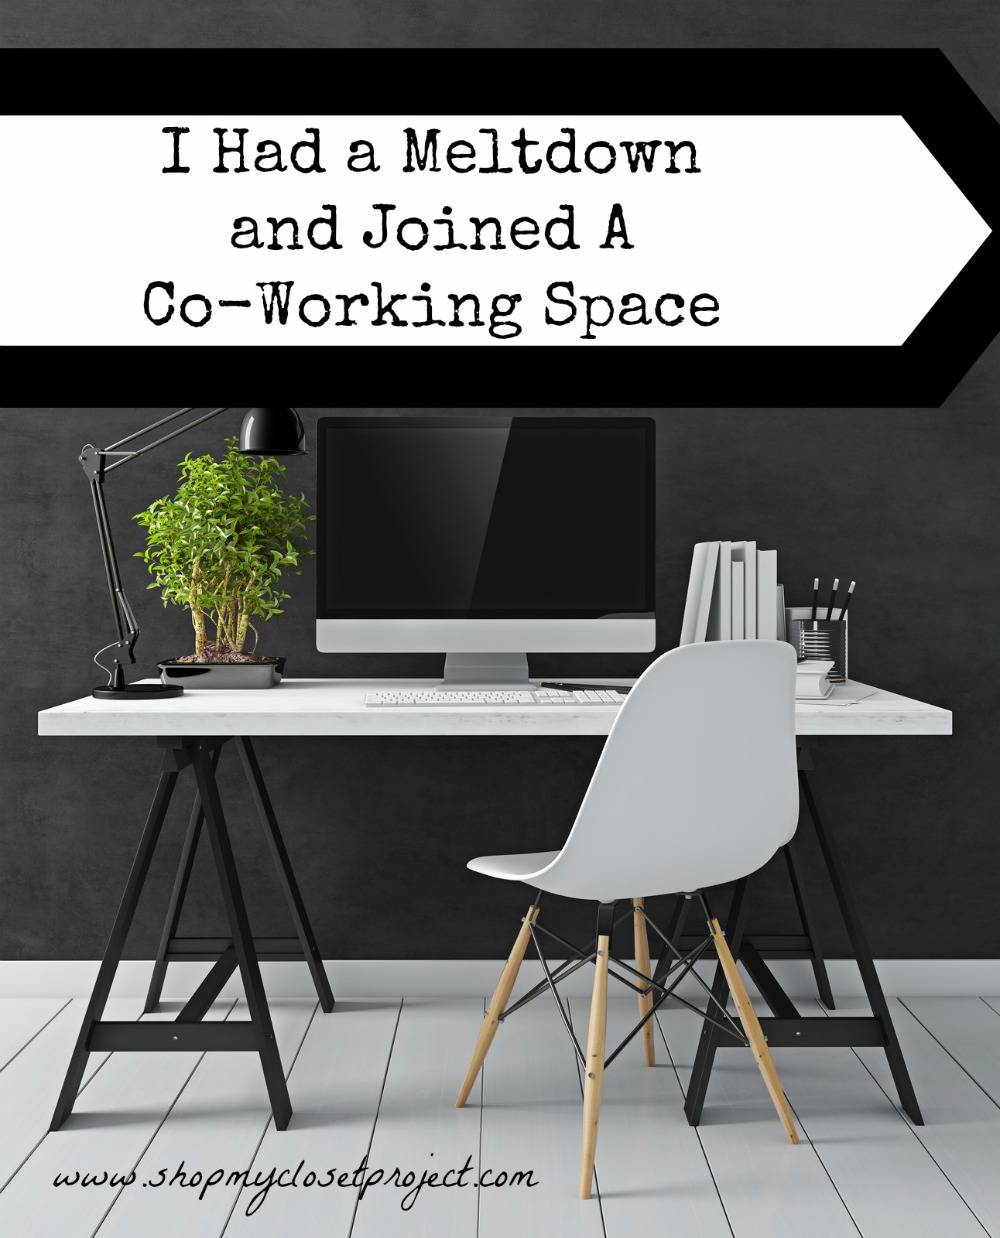 I Had a Meltdown and Joined A Co-Working Space